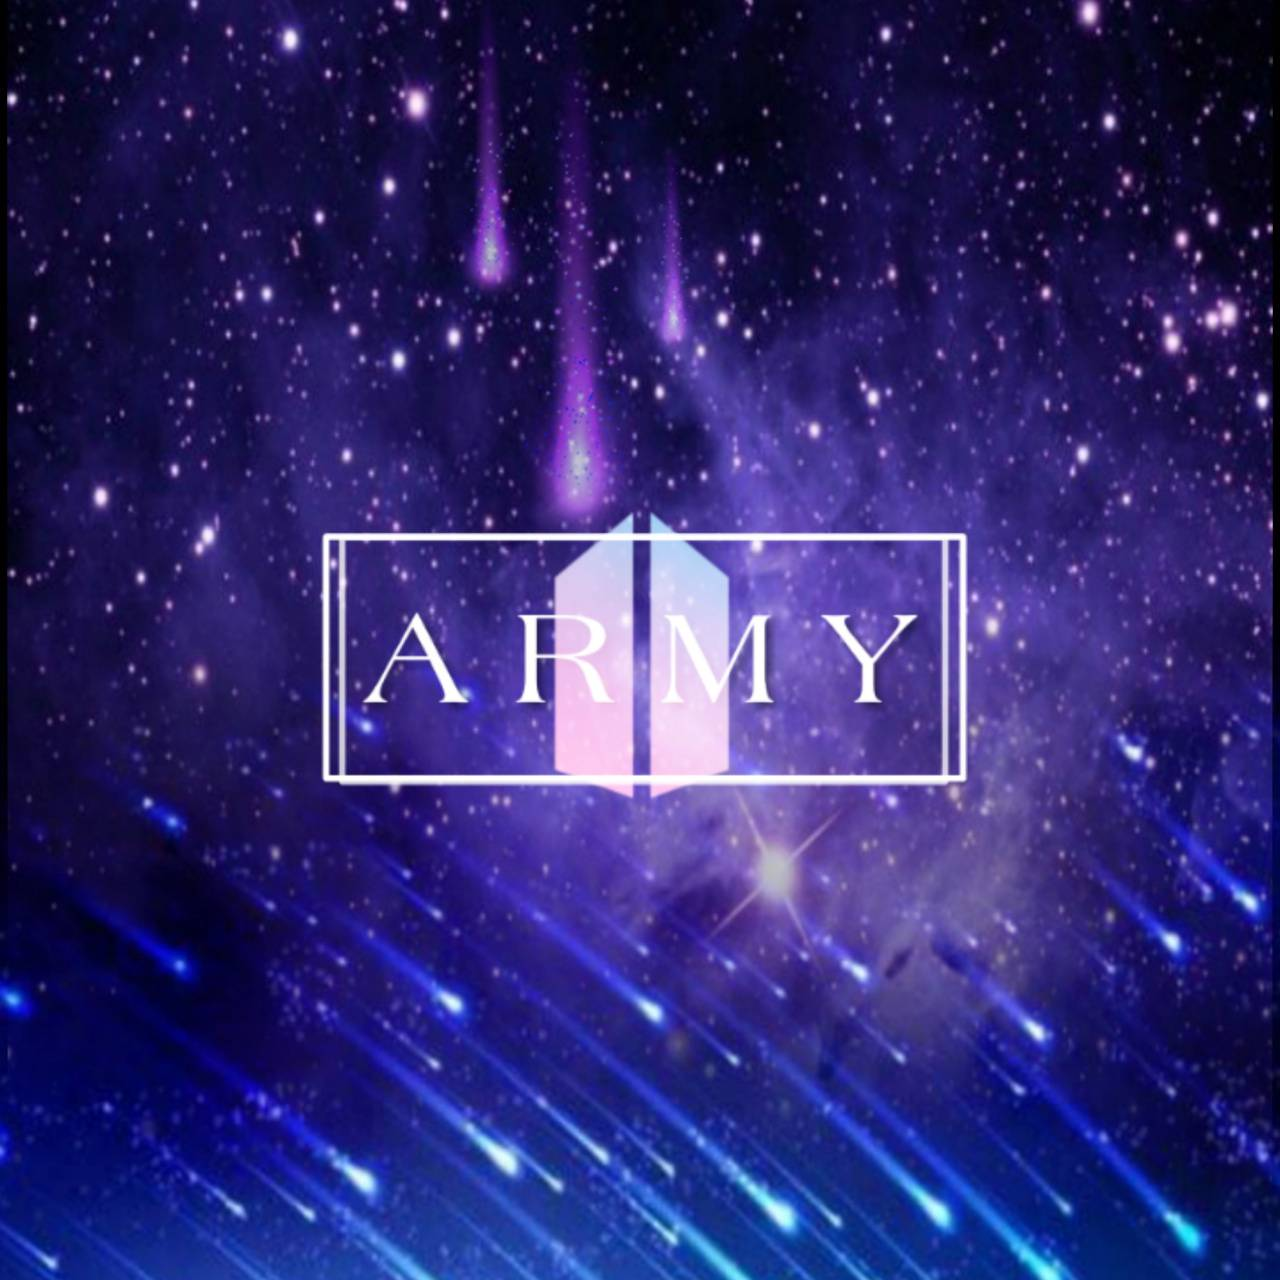 BTS army galaxy wallpaper by GoldenRose0126 - 51 - Free on ZEDGE™